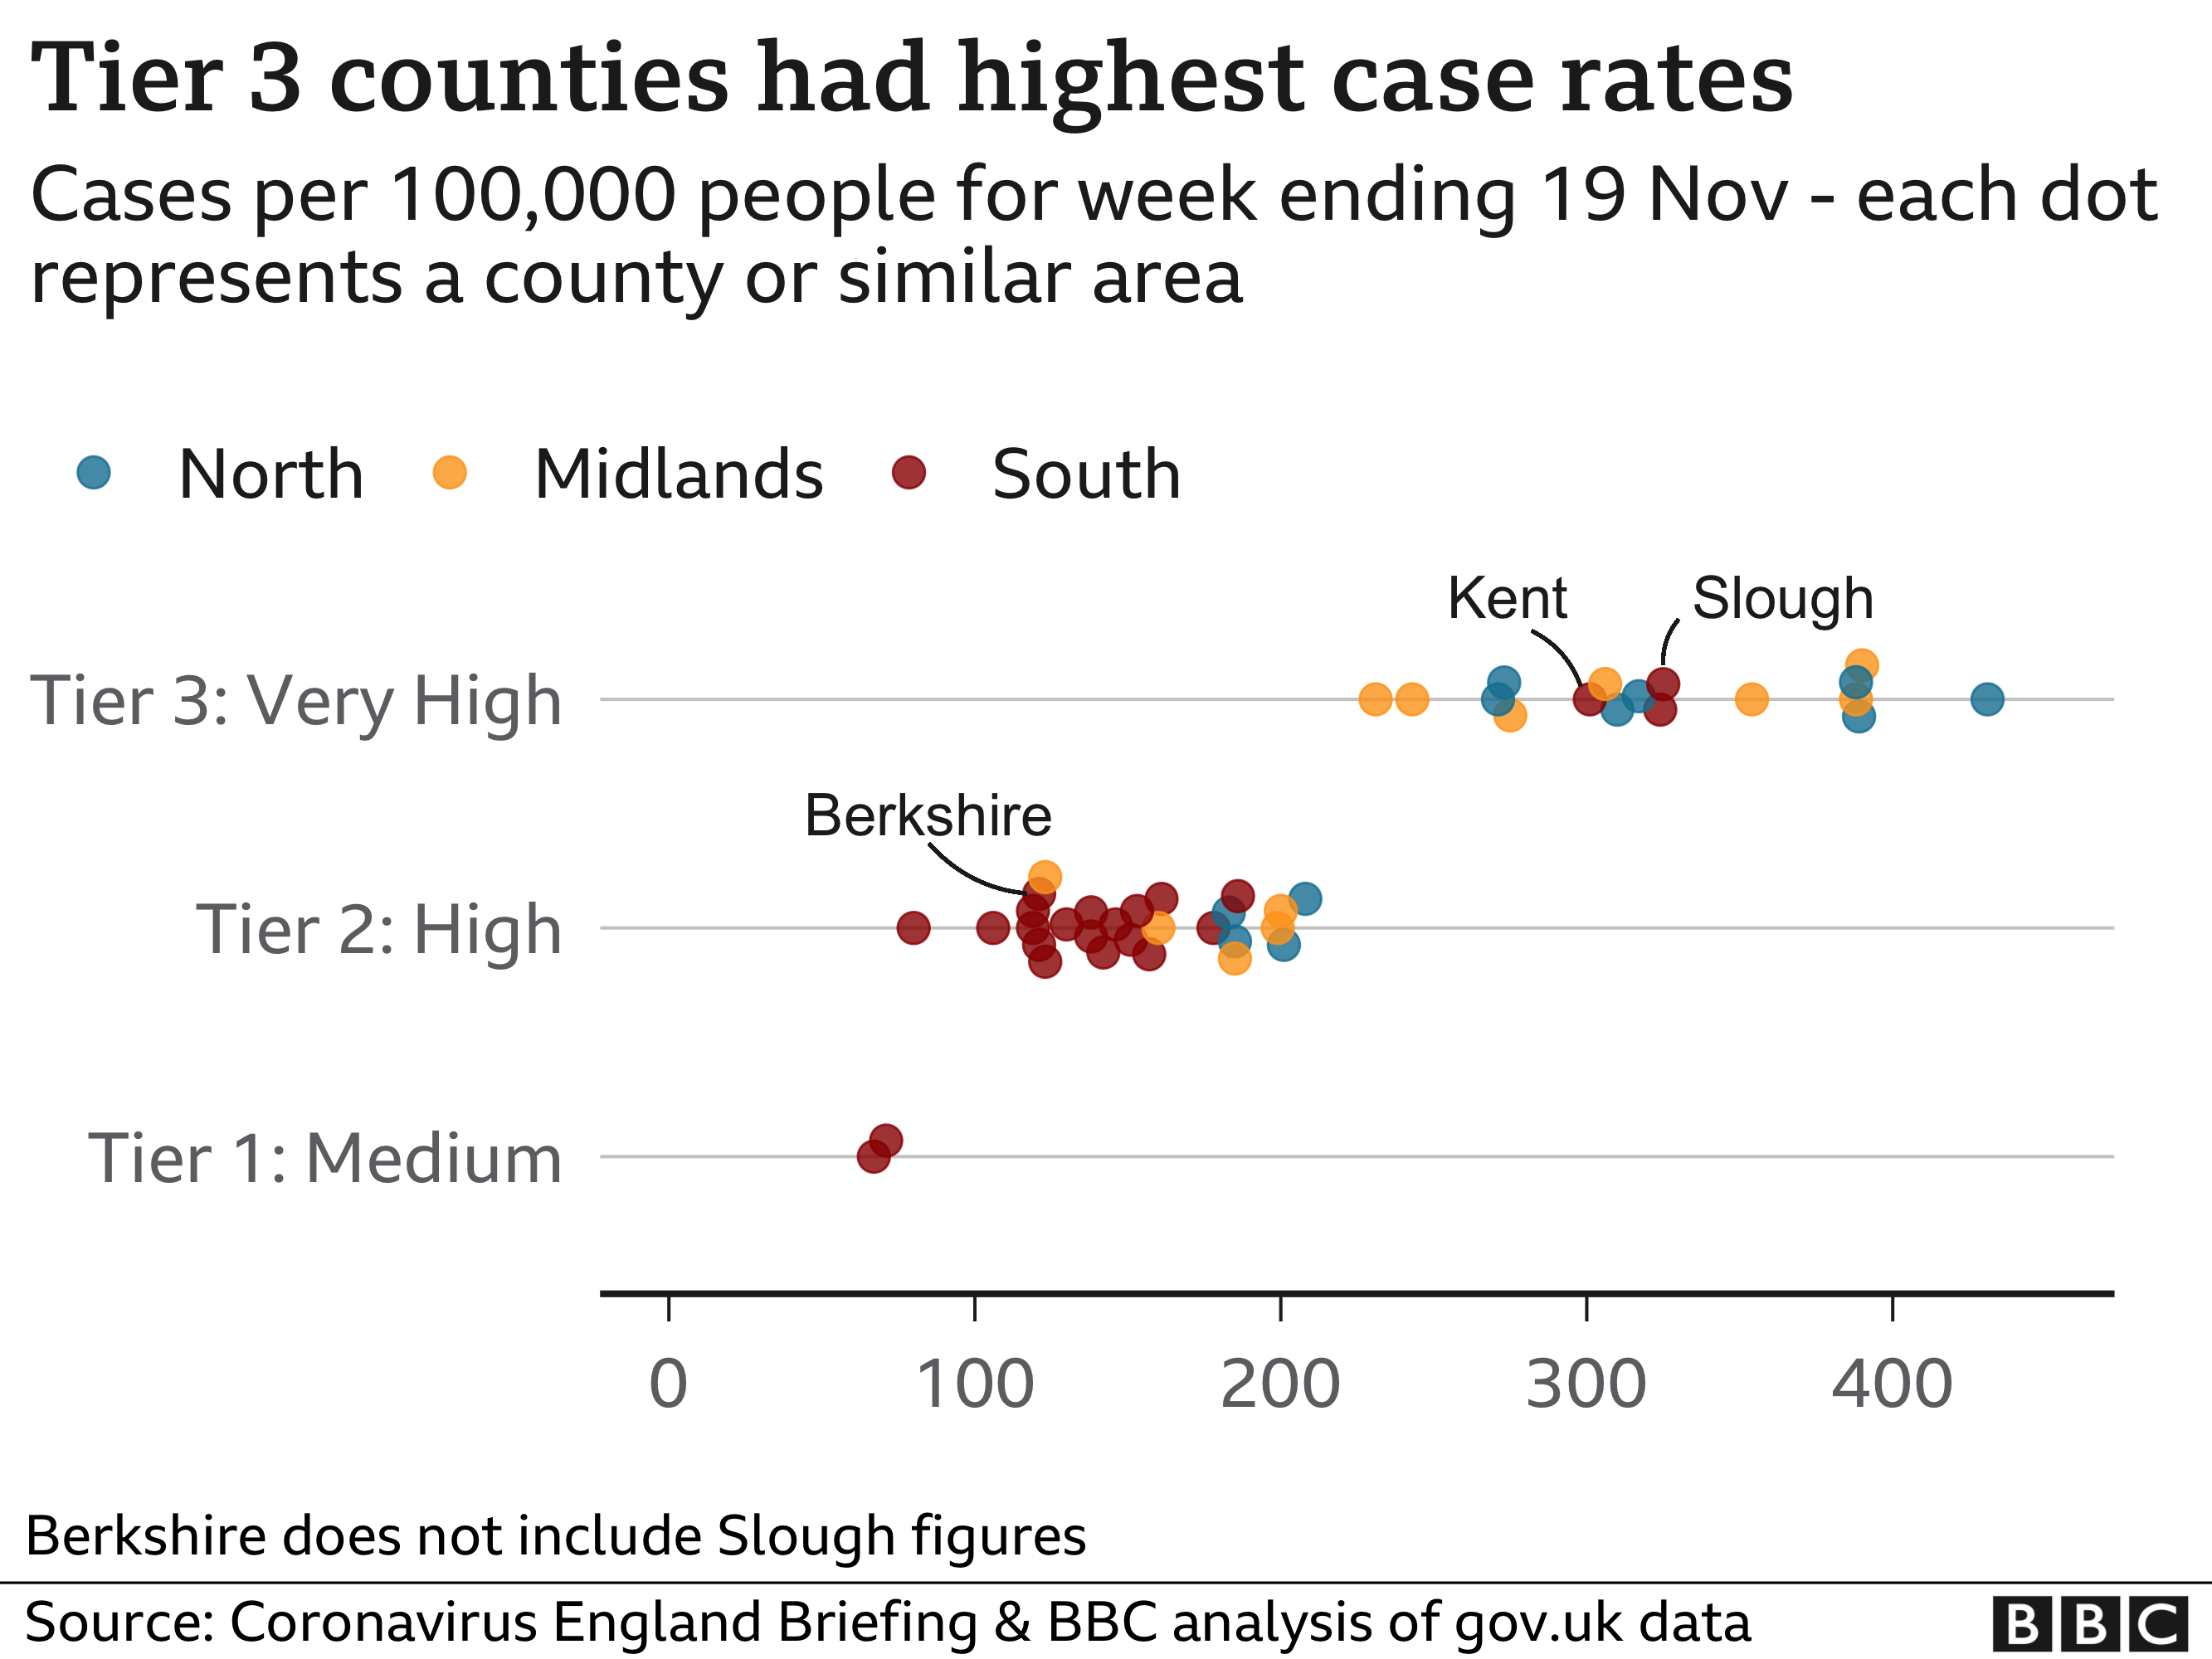 Tier three counties had the highest case rates